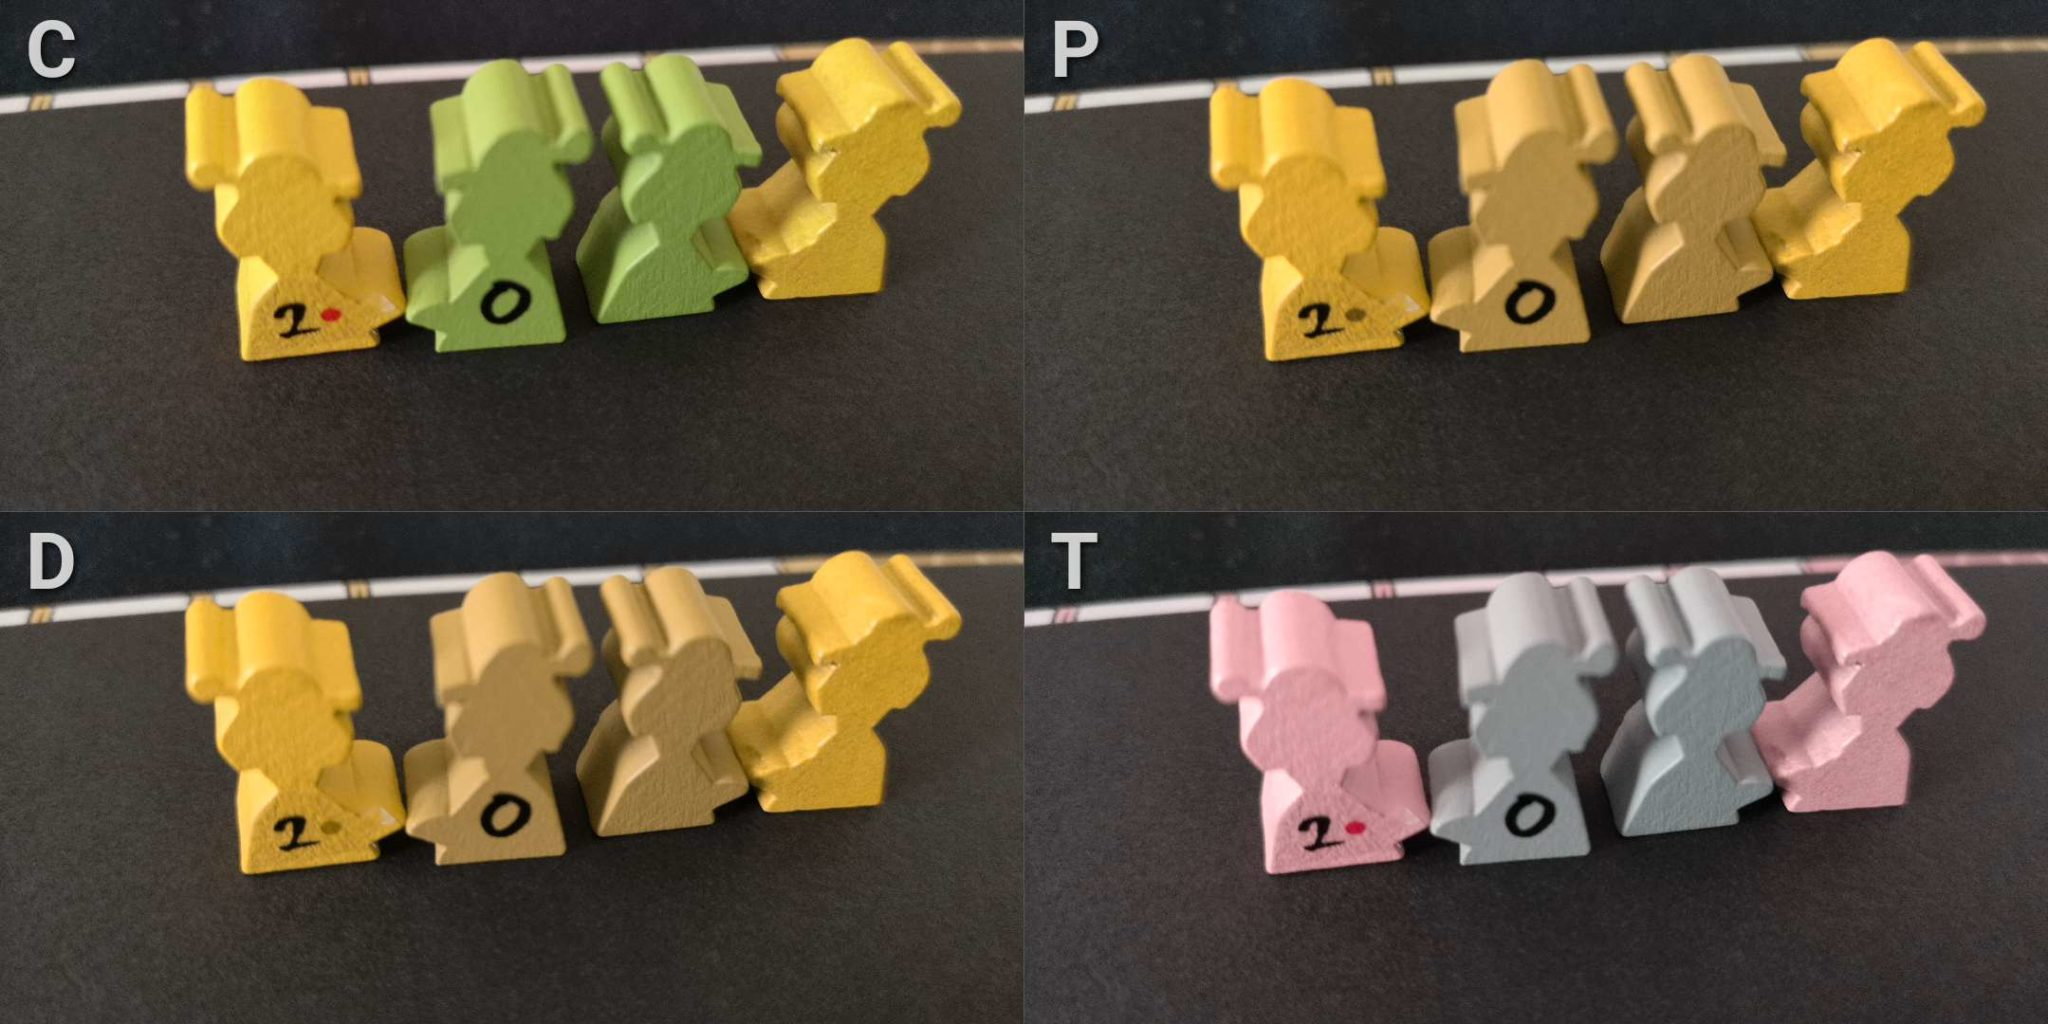 Colour blindness meeples